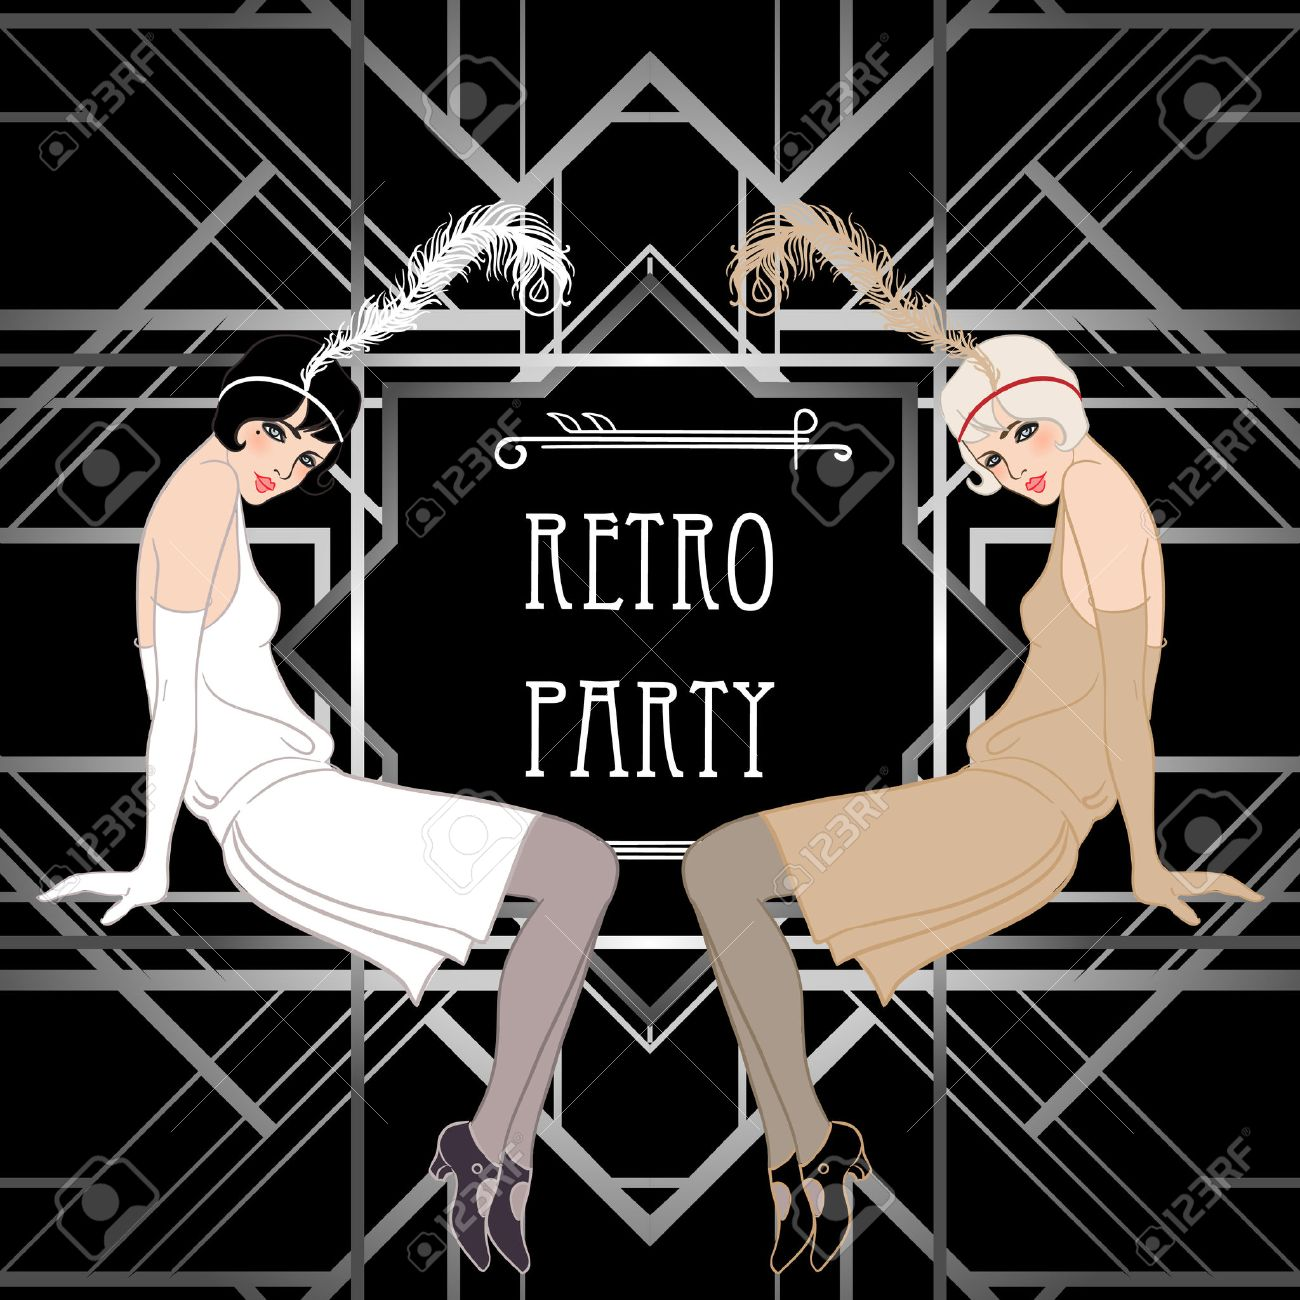 flapper girl retro party invitation design vector illustration great gatsby style stock - Gatsby Party Invitation